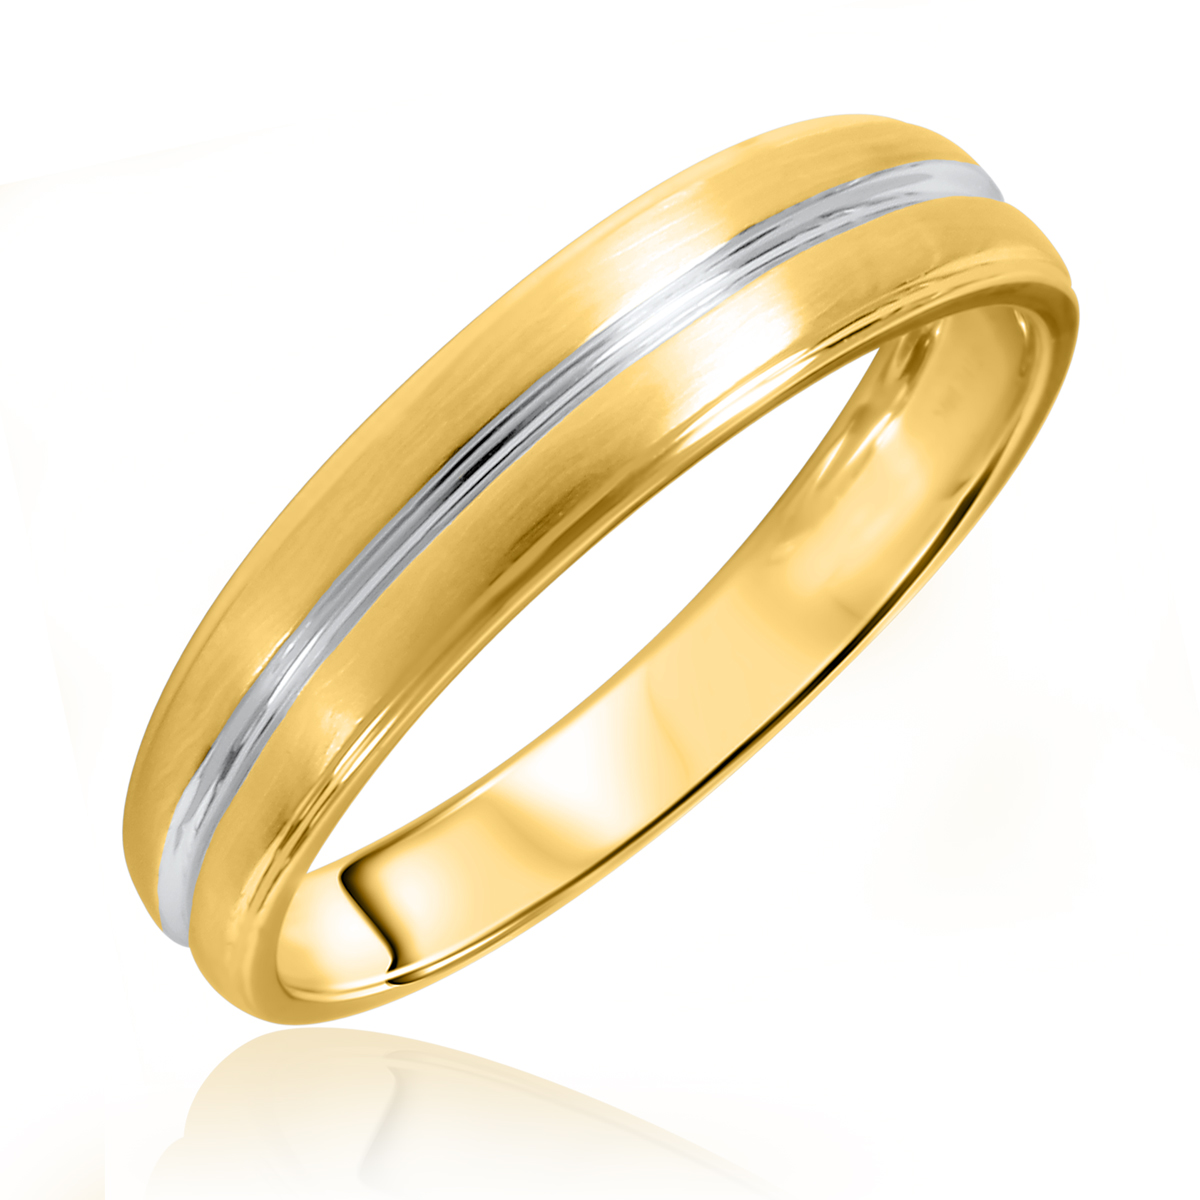 Traditional No Diamond, 5 millimeter, 14K Yellow Gold Men's Wedding Band- Size 8